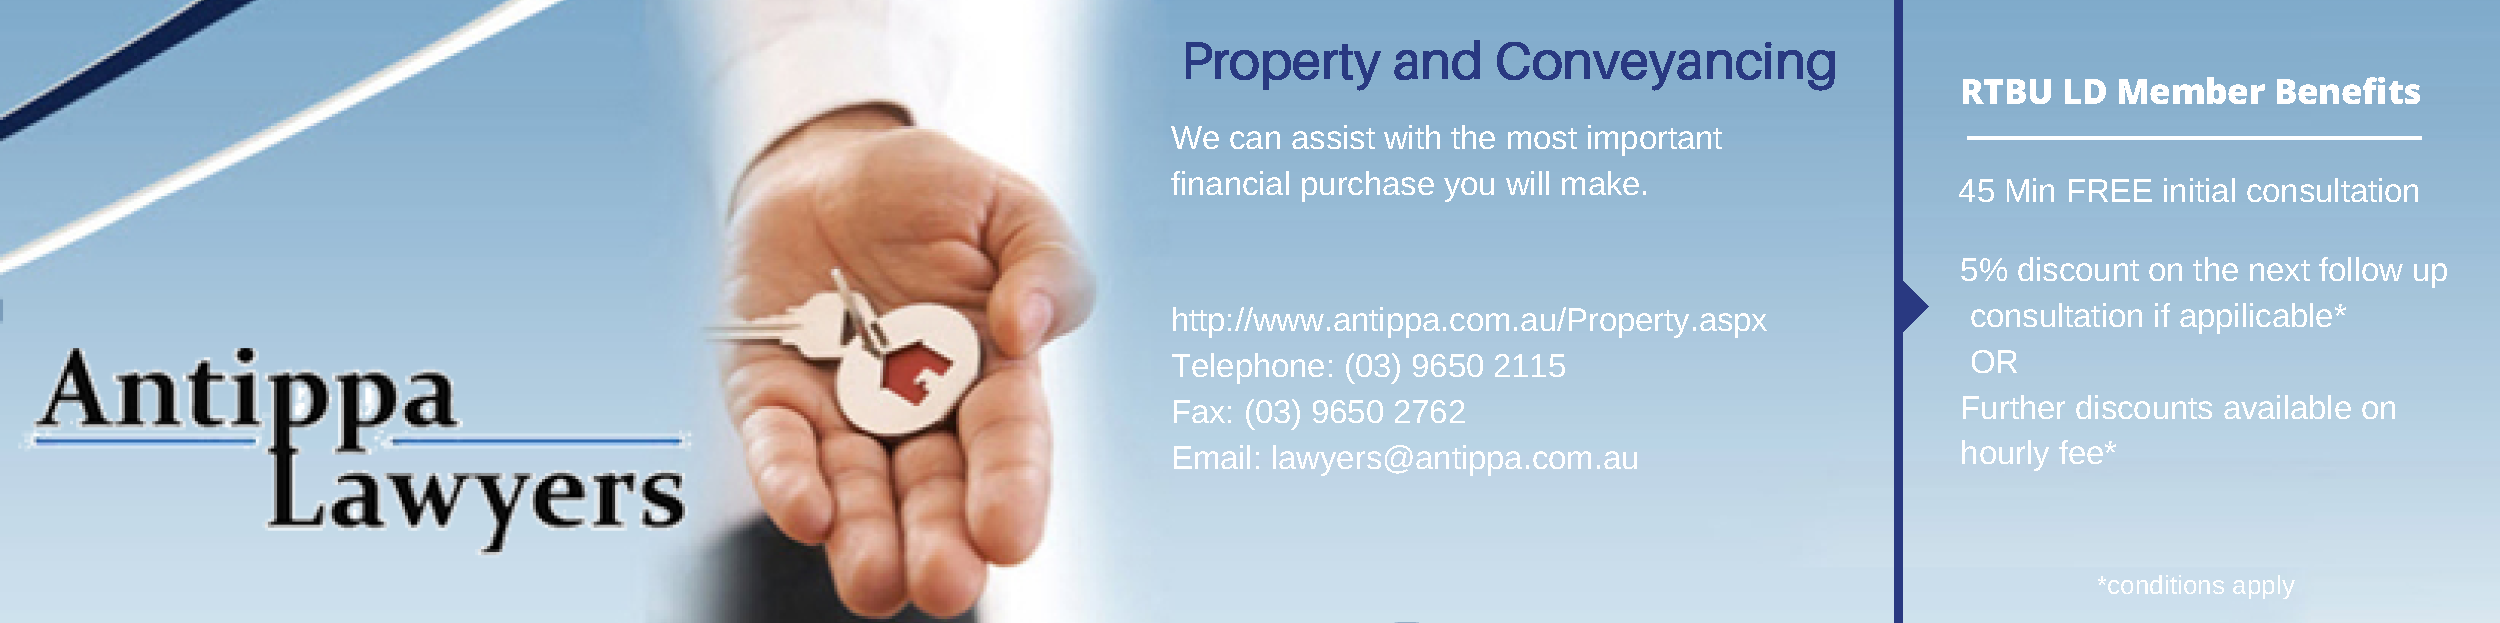 Antippa Property